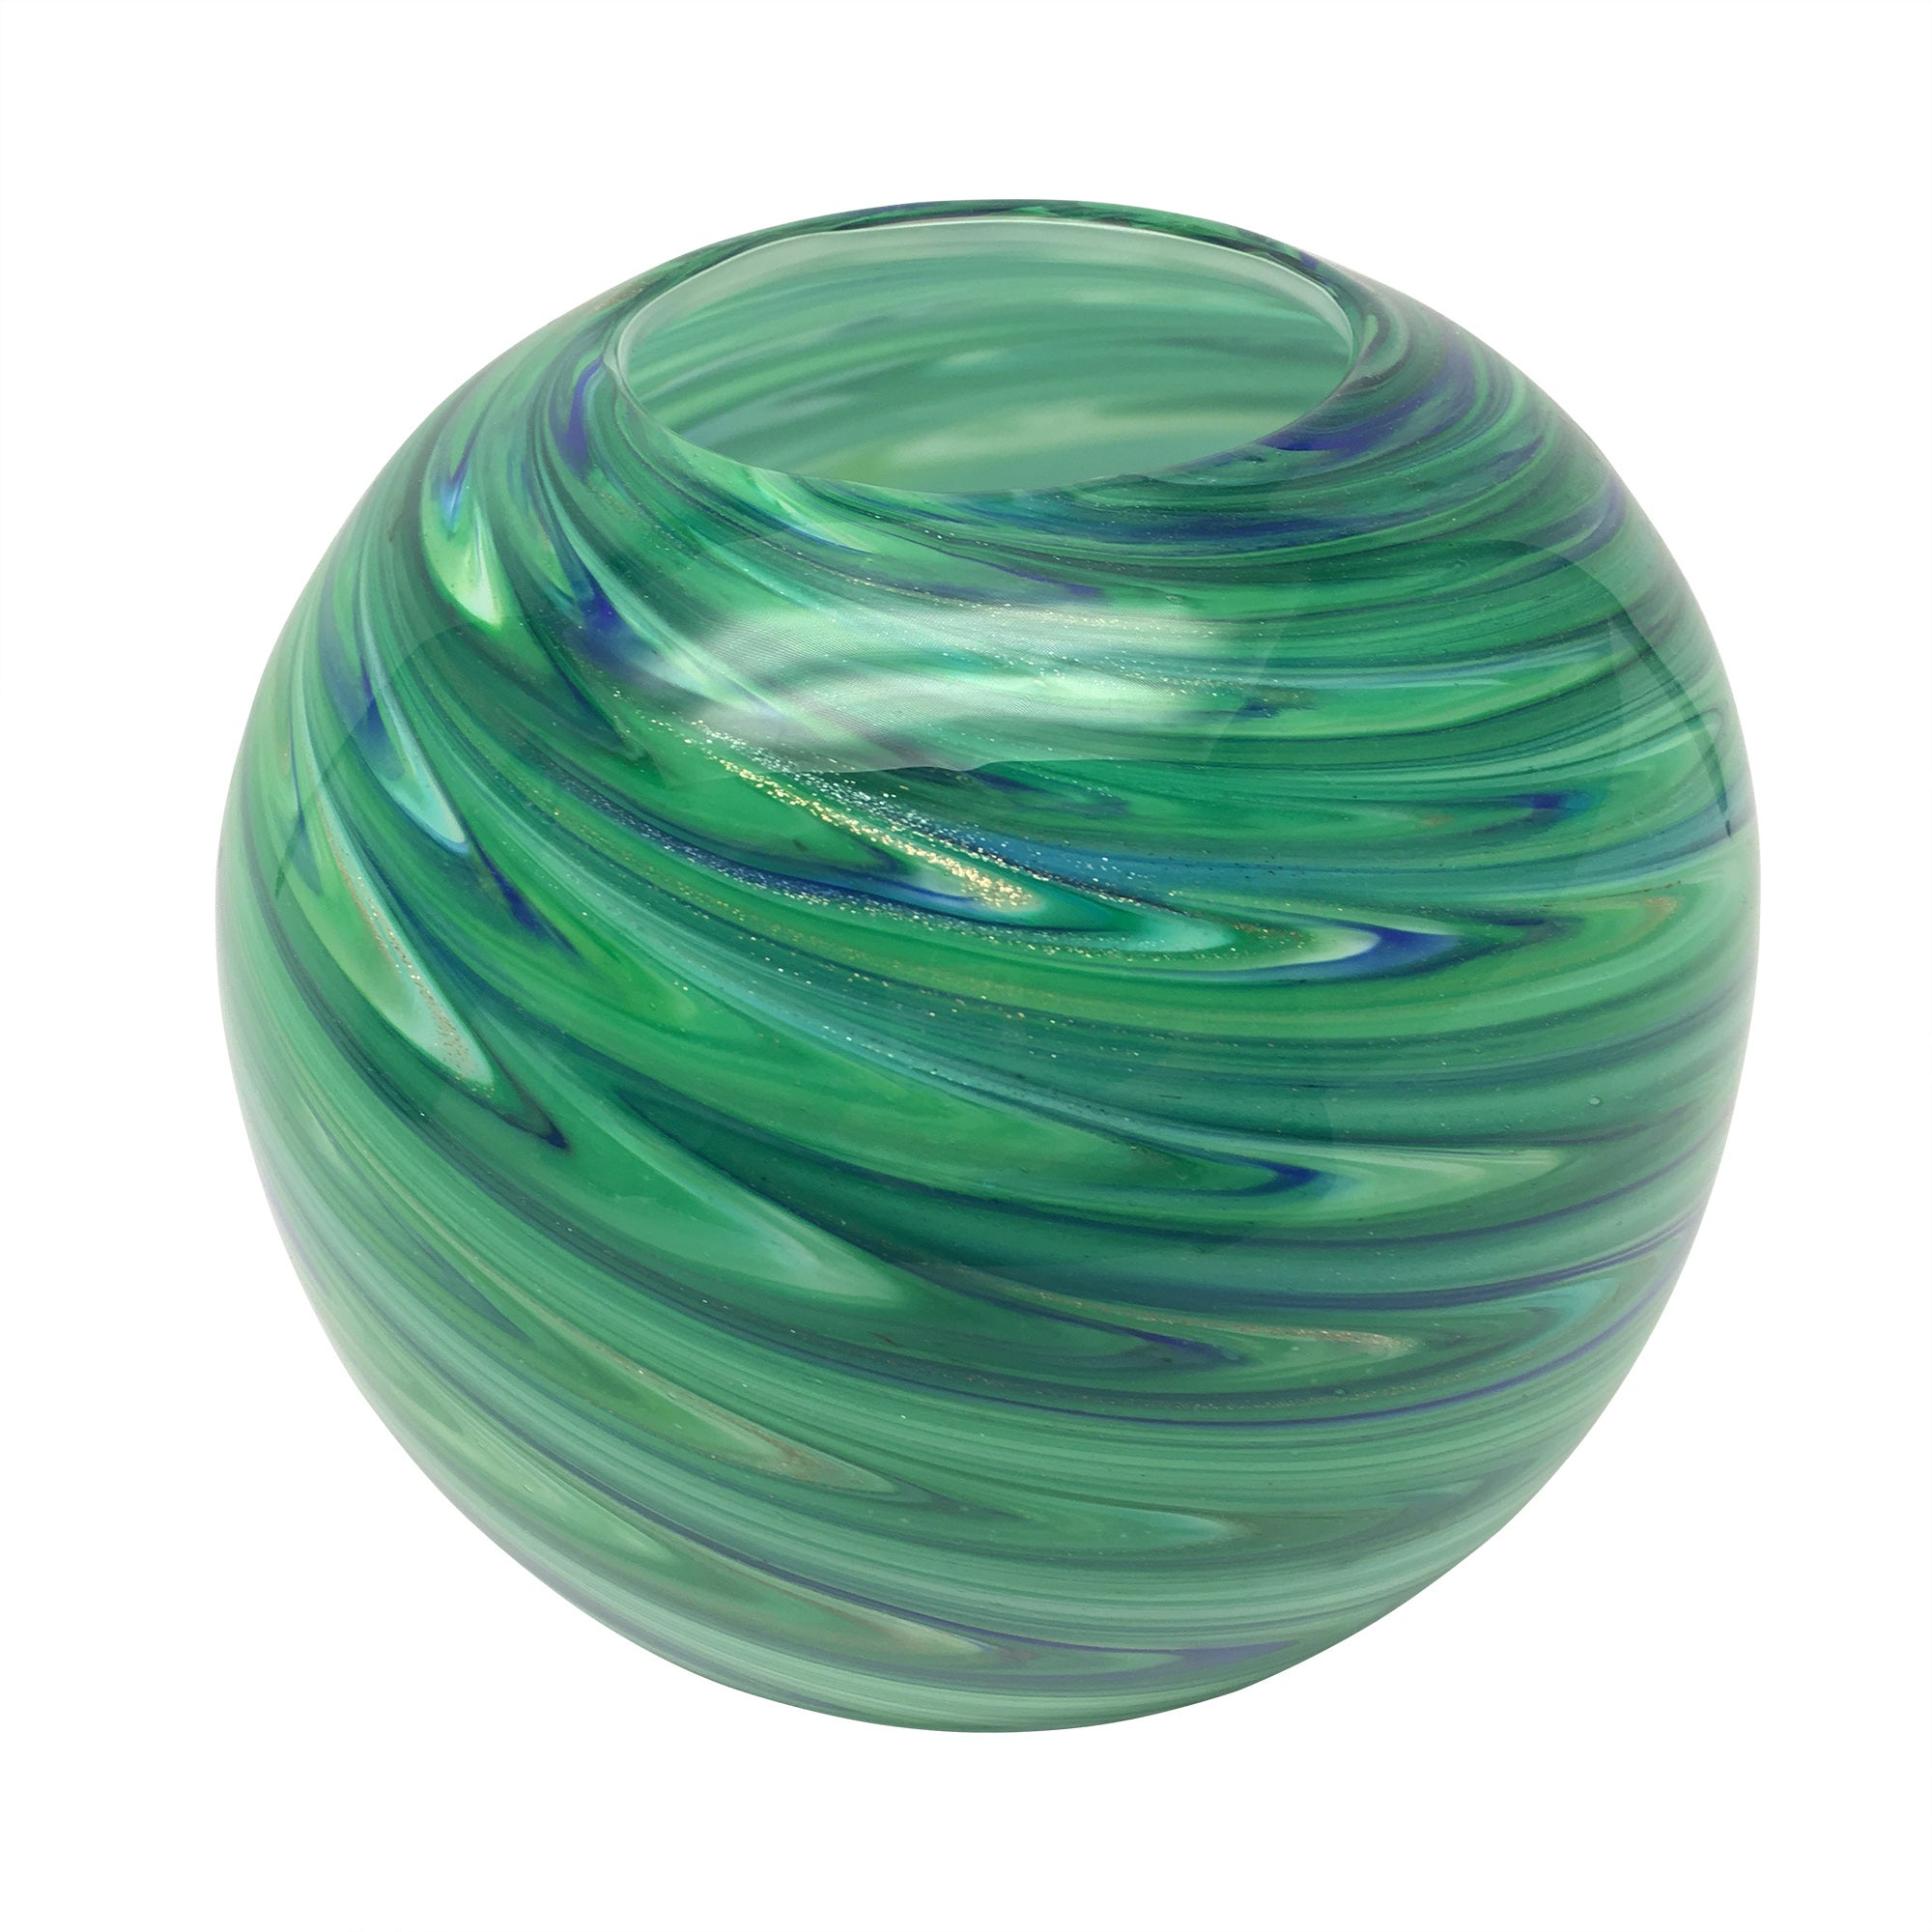 Photo of Colonial charm peacock glass bowl blue